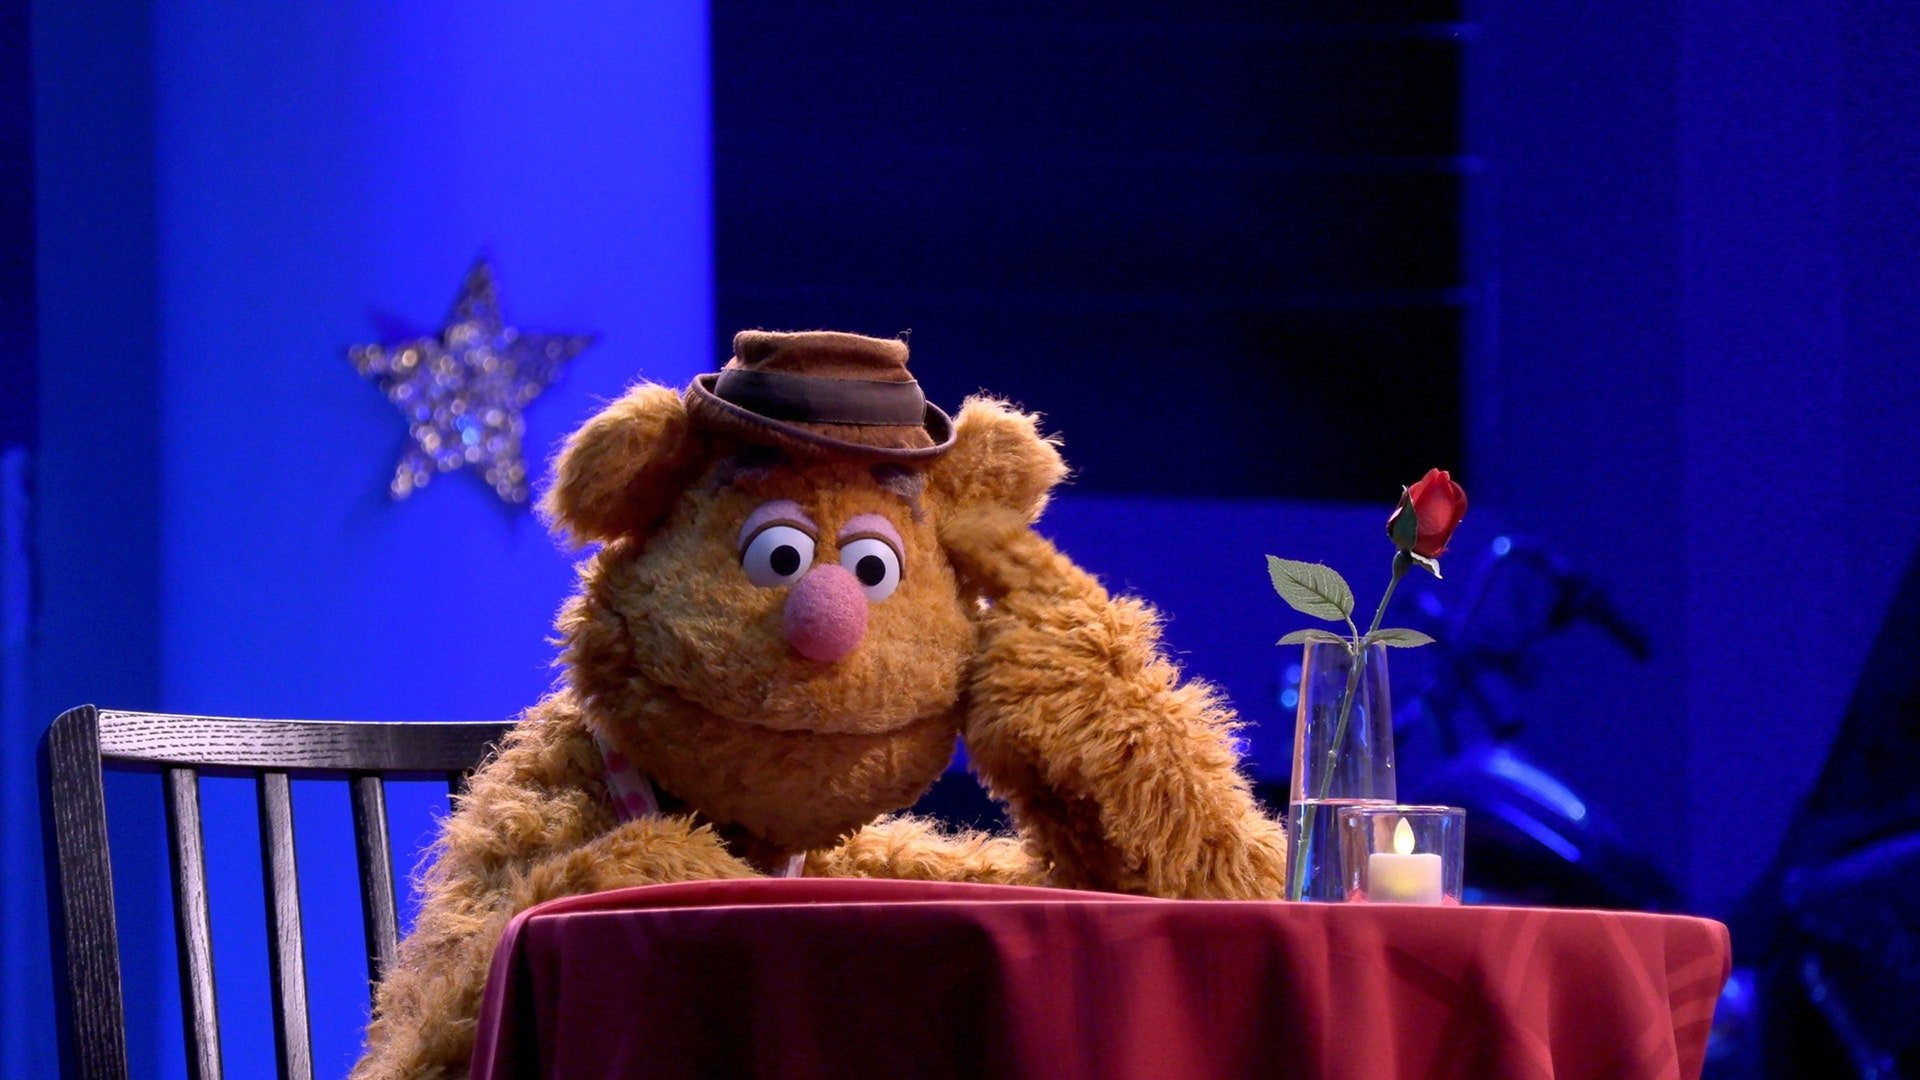 6a The Muppets: The Adult Origins Of 'Mahna Mahna' And More Things You Didn't Know